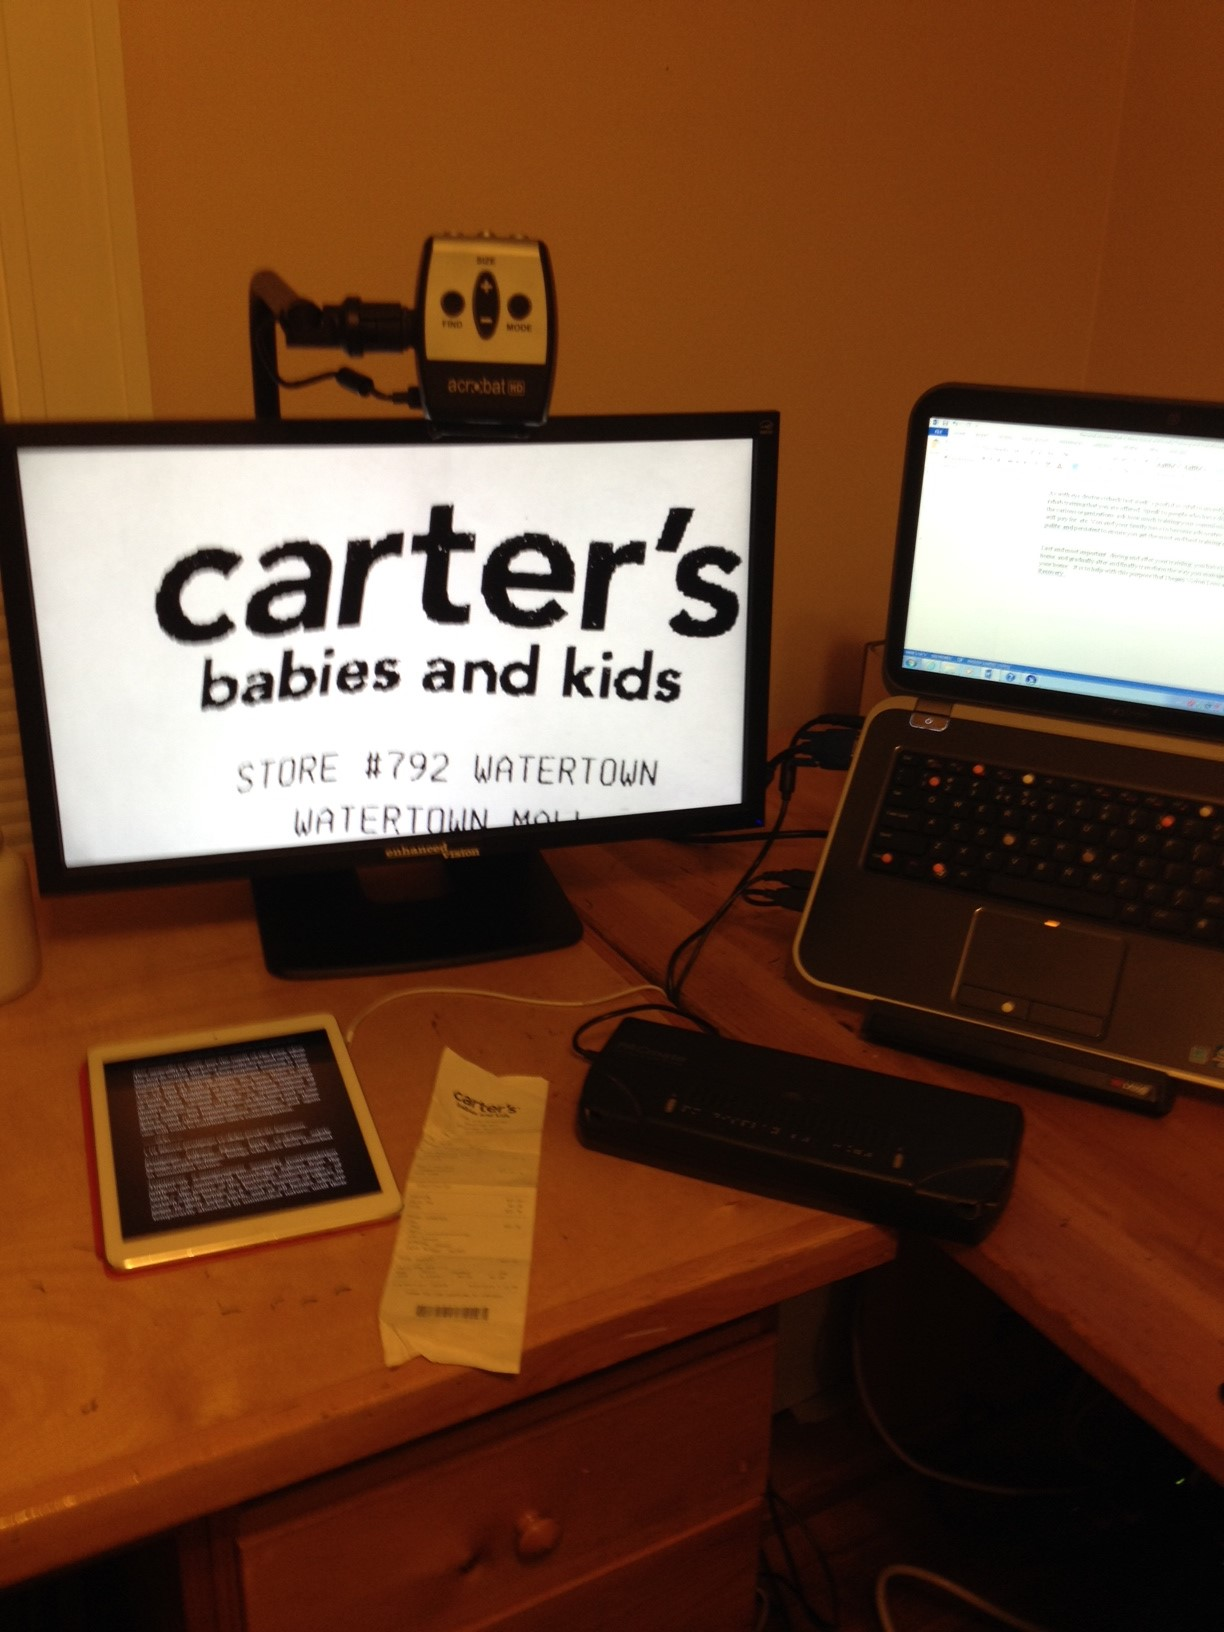 Left to right: iPad showing white text on black background, video magnifier showing enlarged image of store receipt and  refreshable braille displaying text from laptop on right.